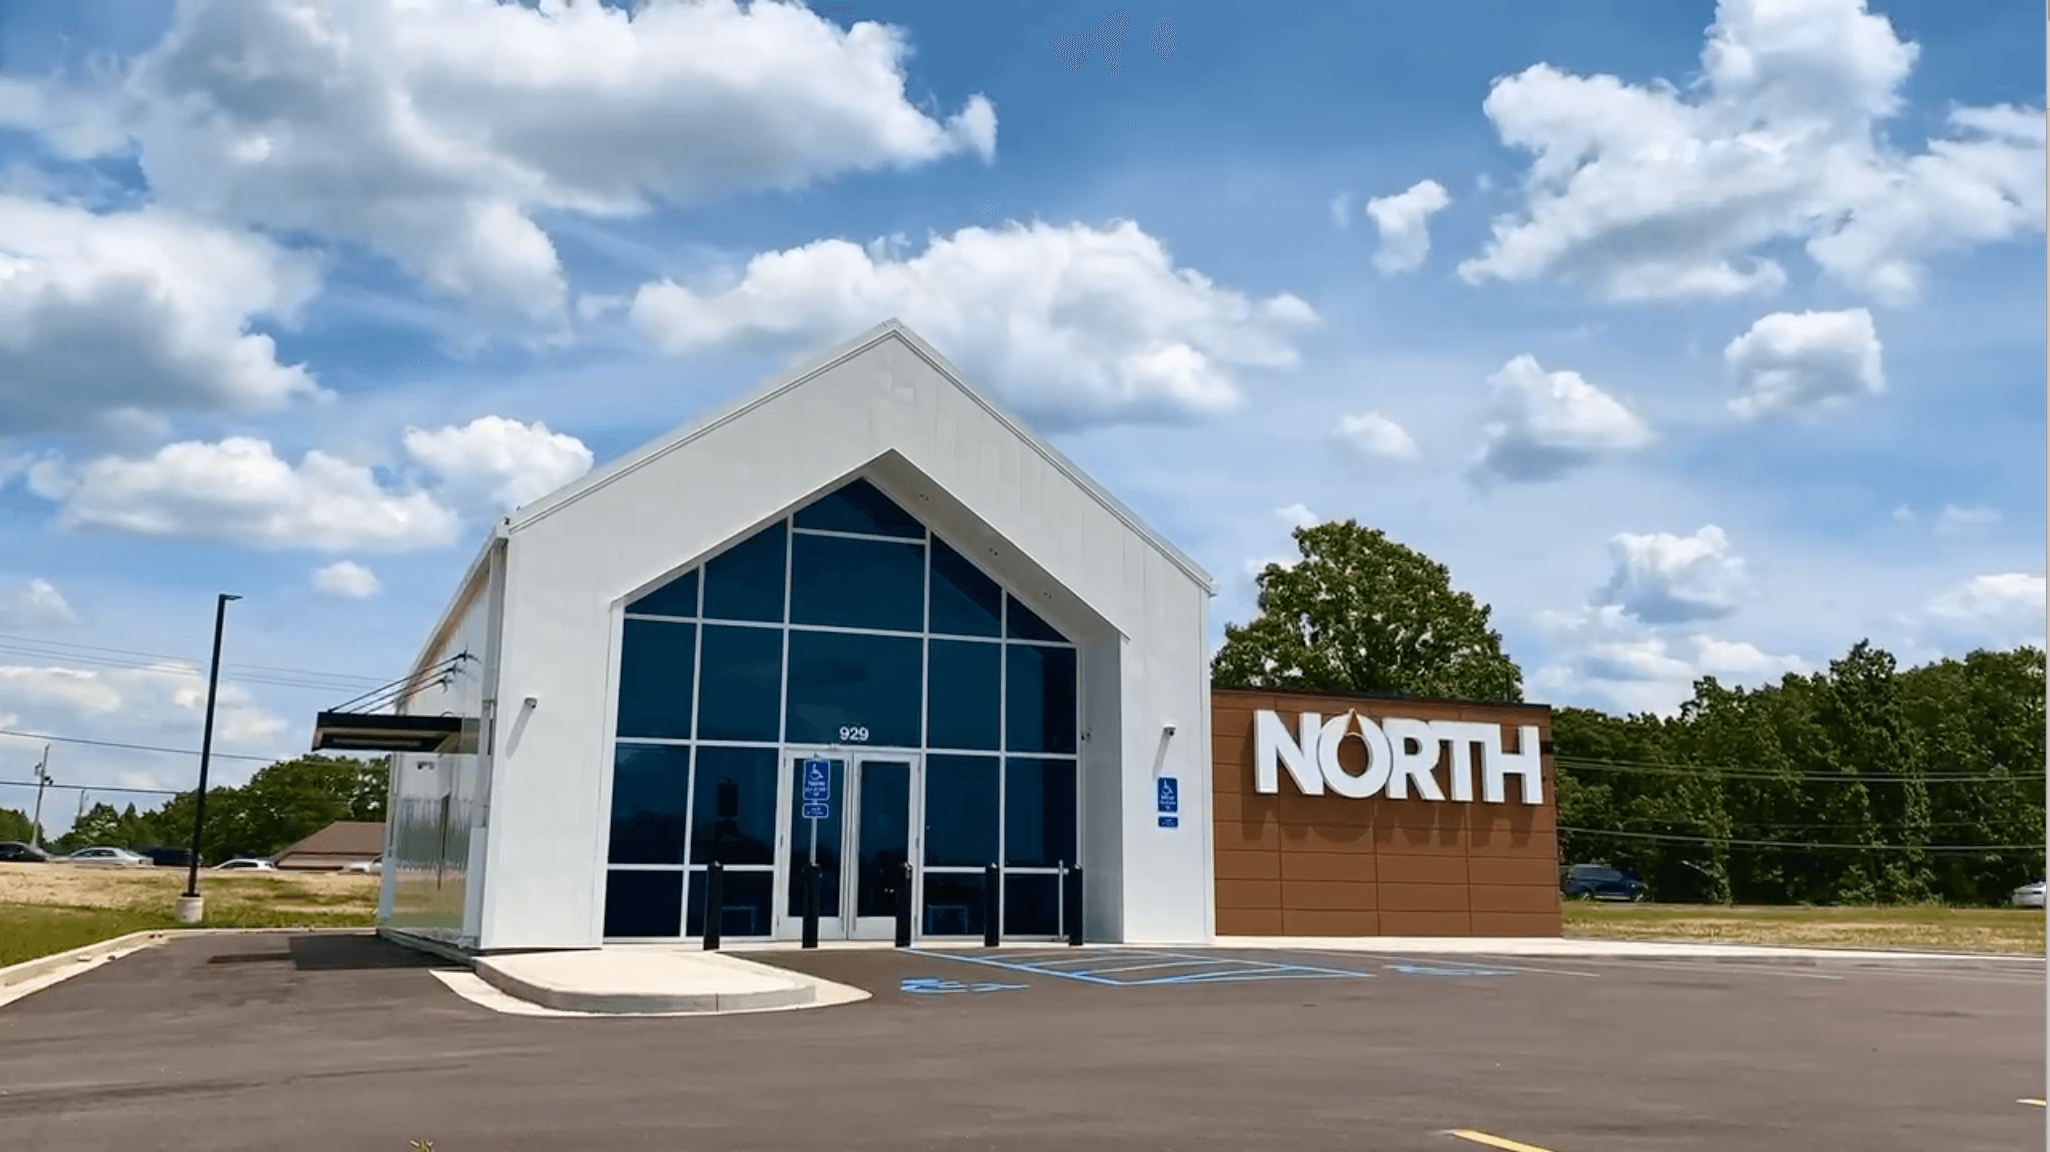 Visit North in Hillsboro, MO for Our Grand Opening!